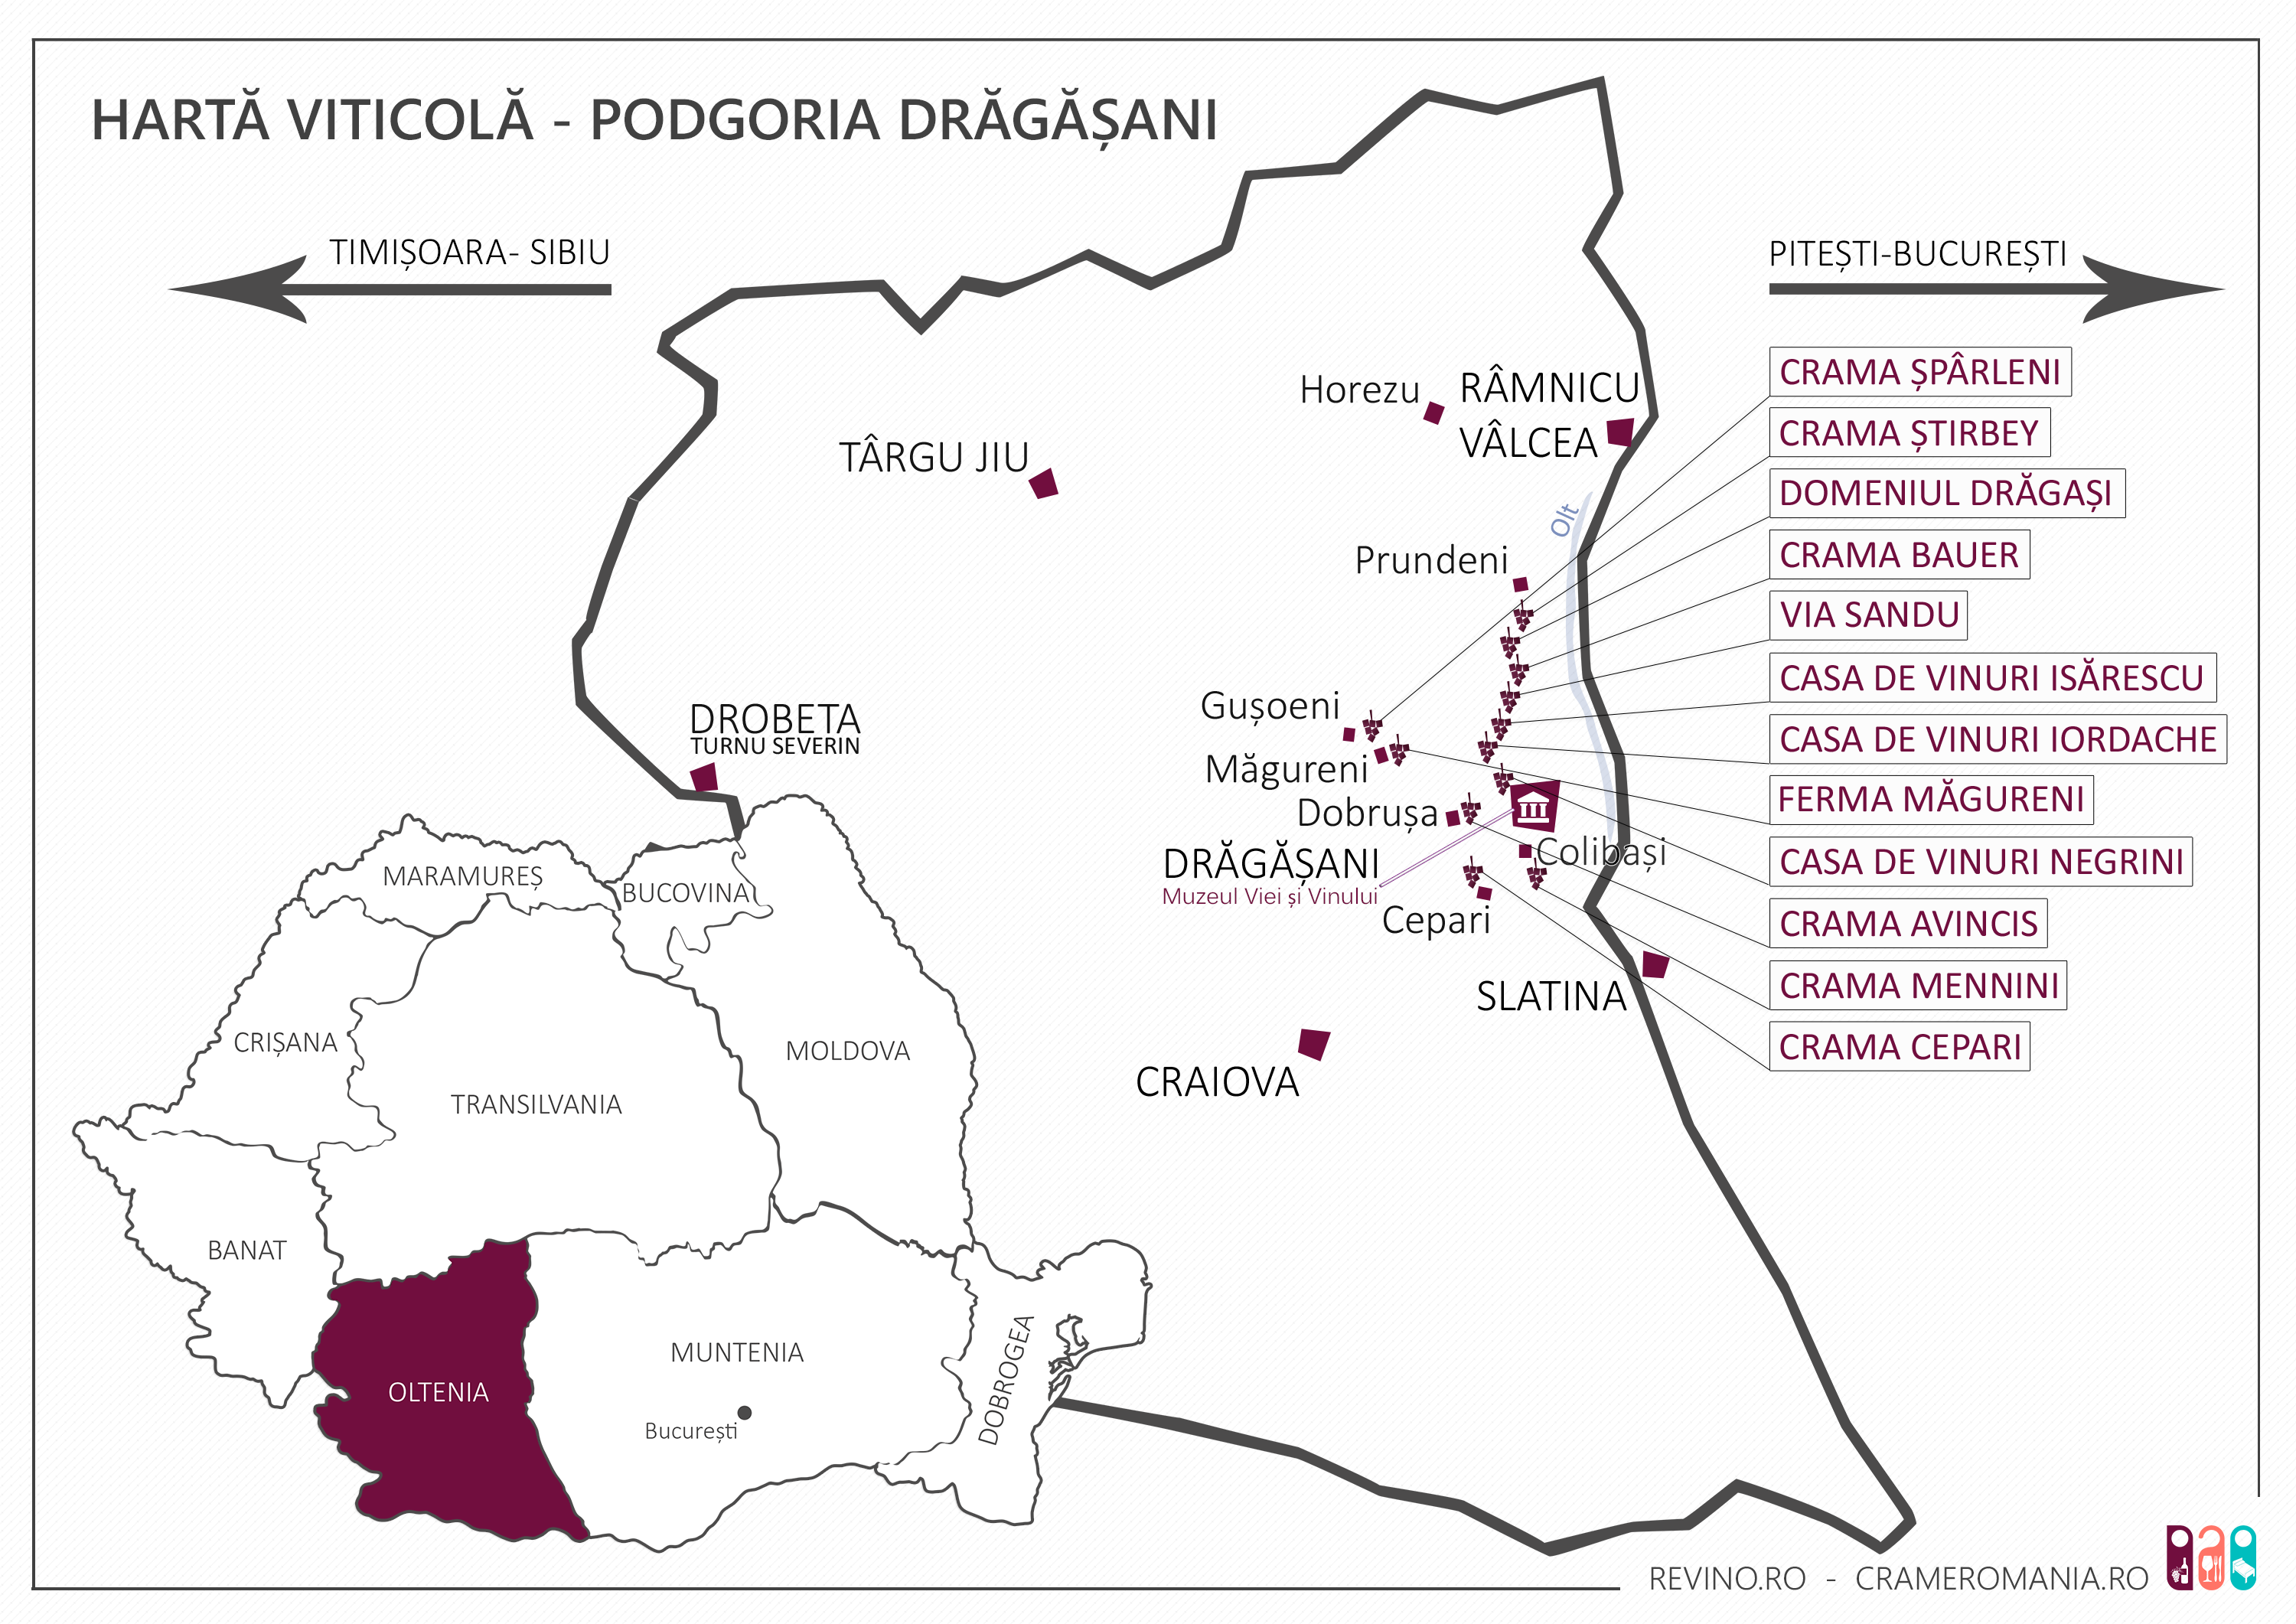 Dragasani vineyard map